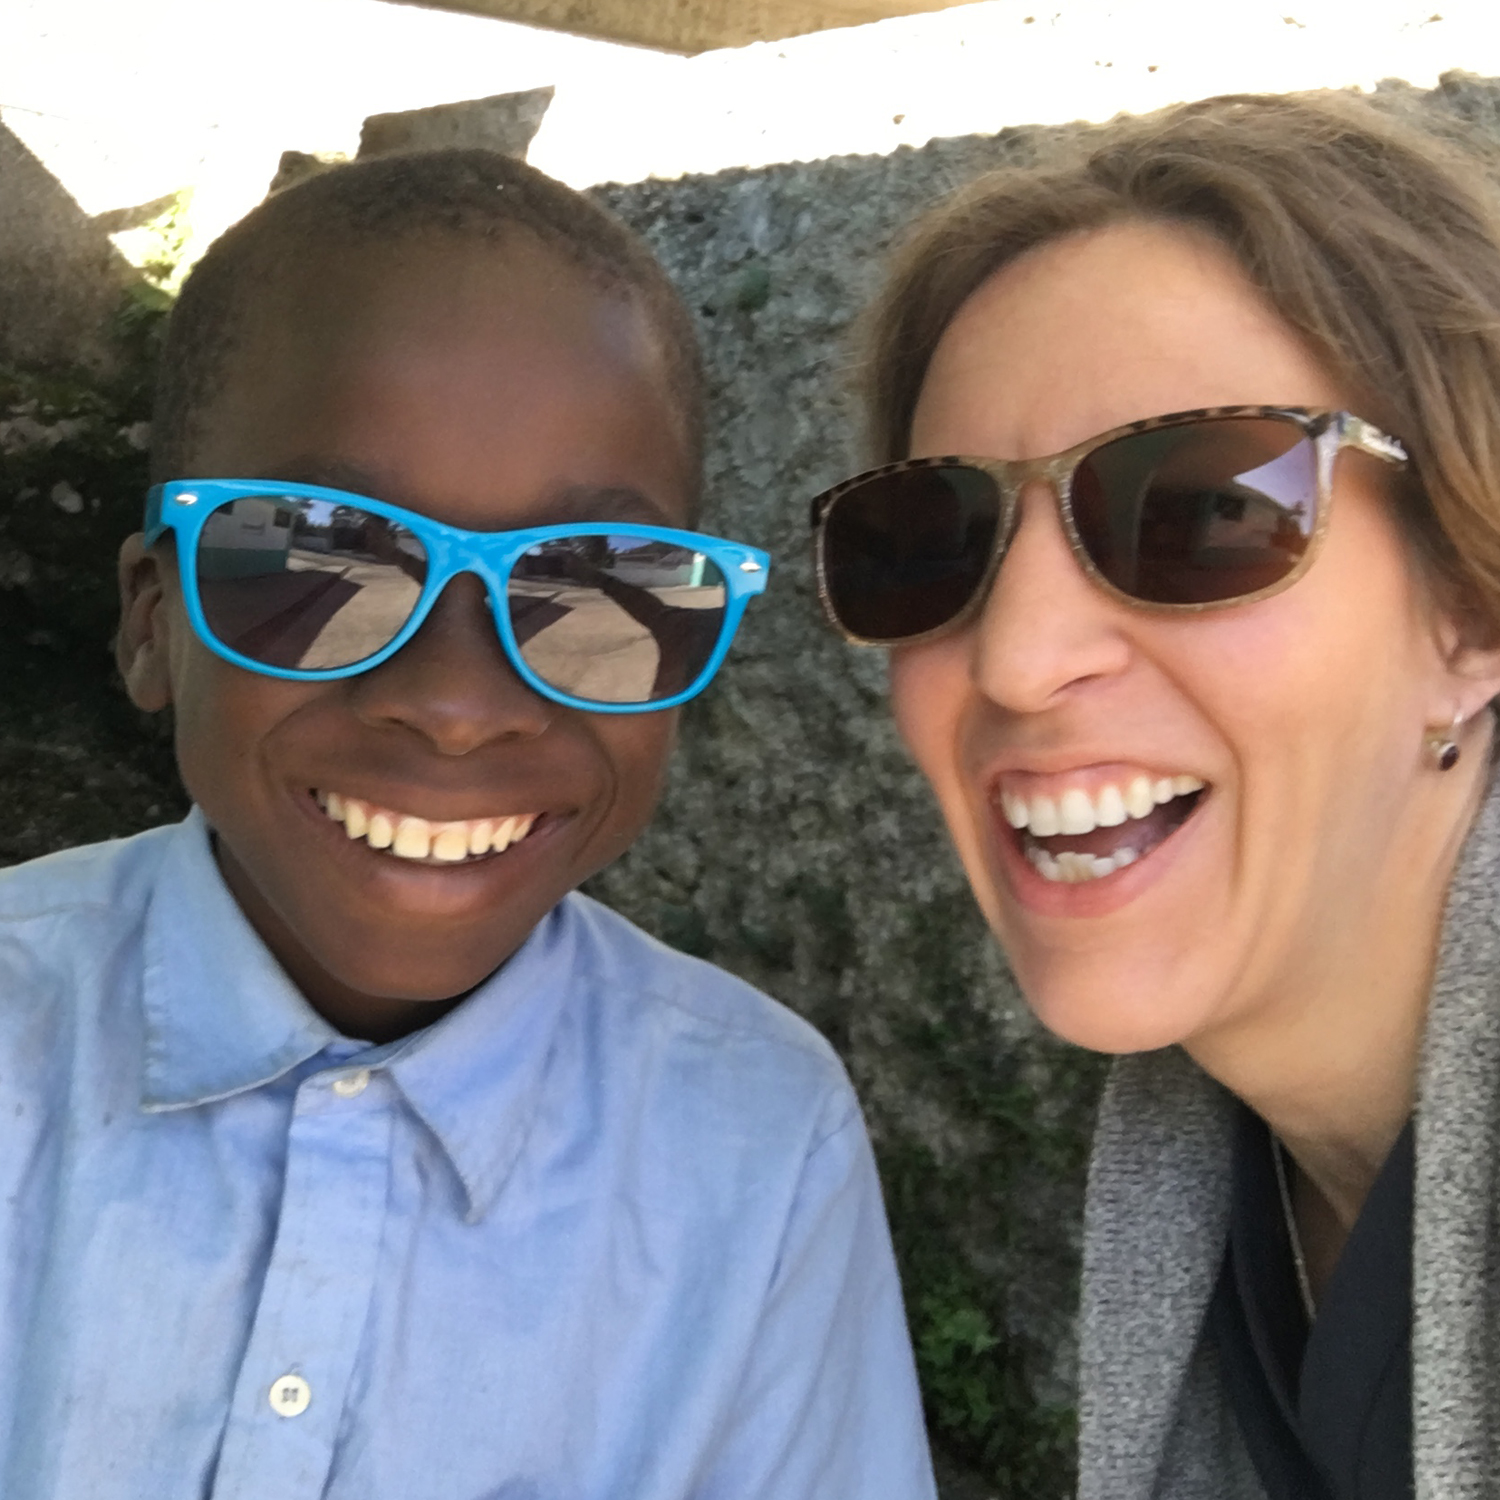 Melissa And Boy Smiling In Sunglasses In Haiti